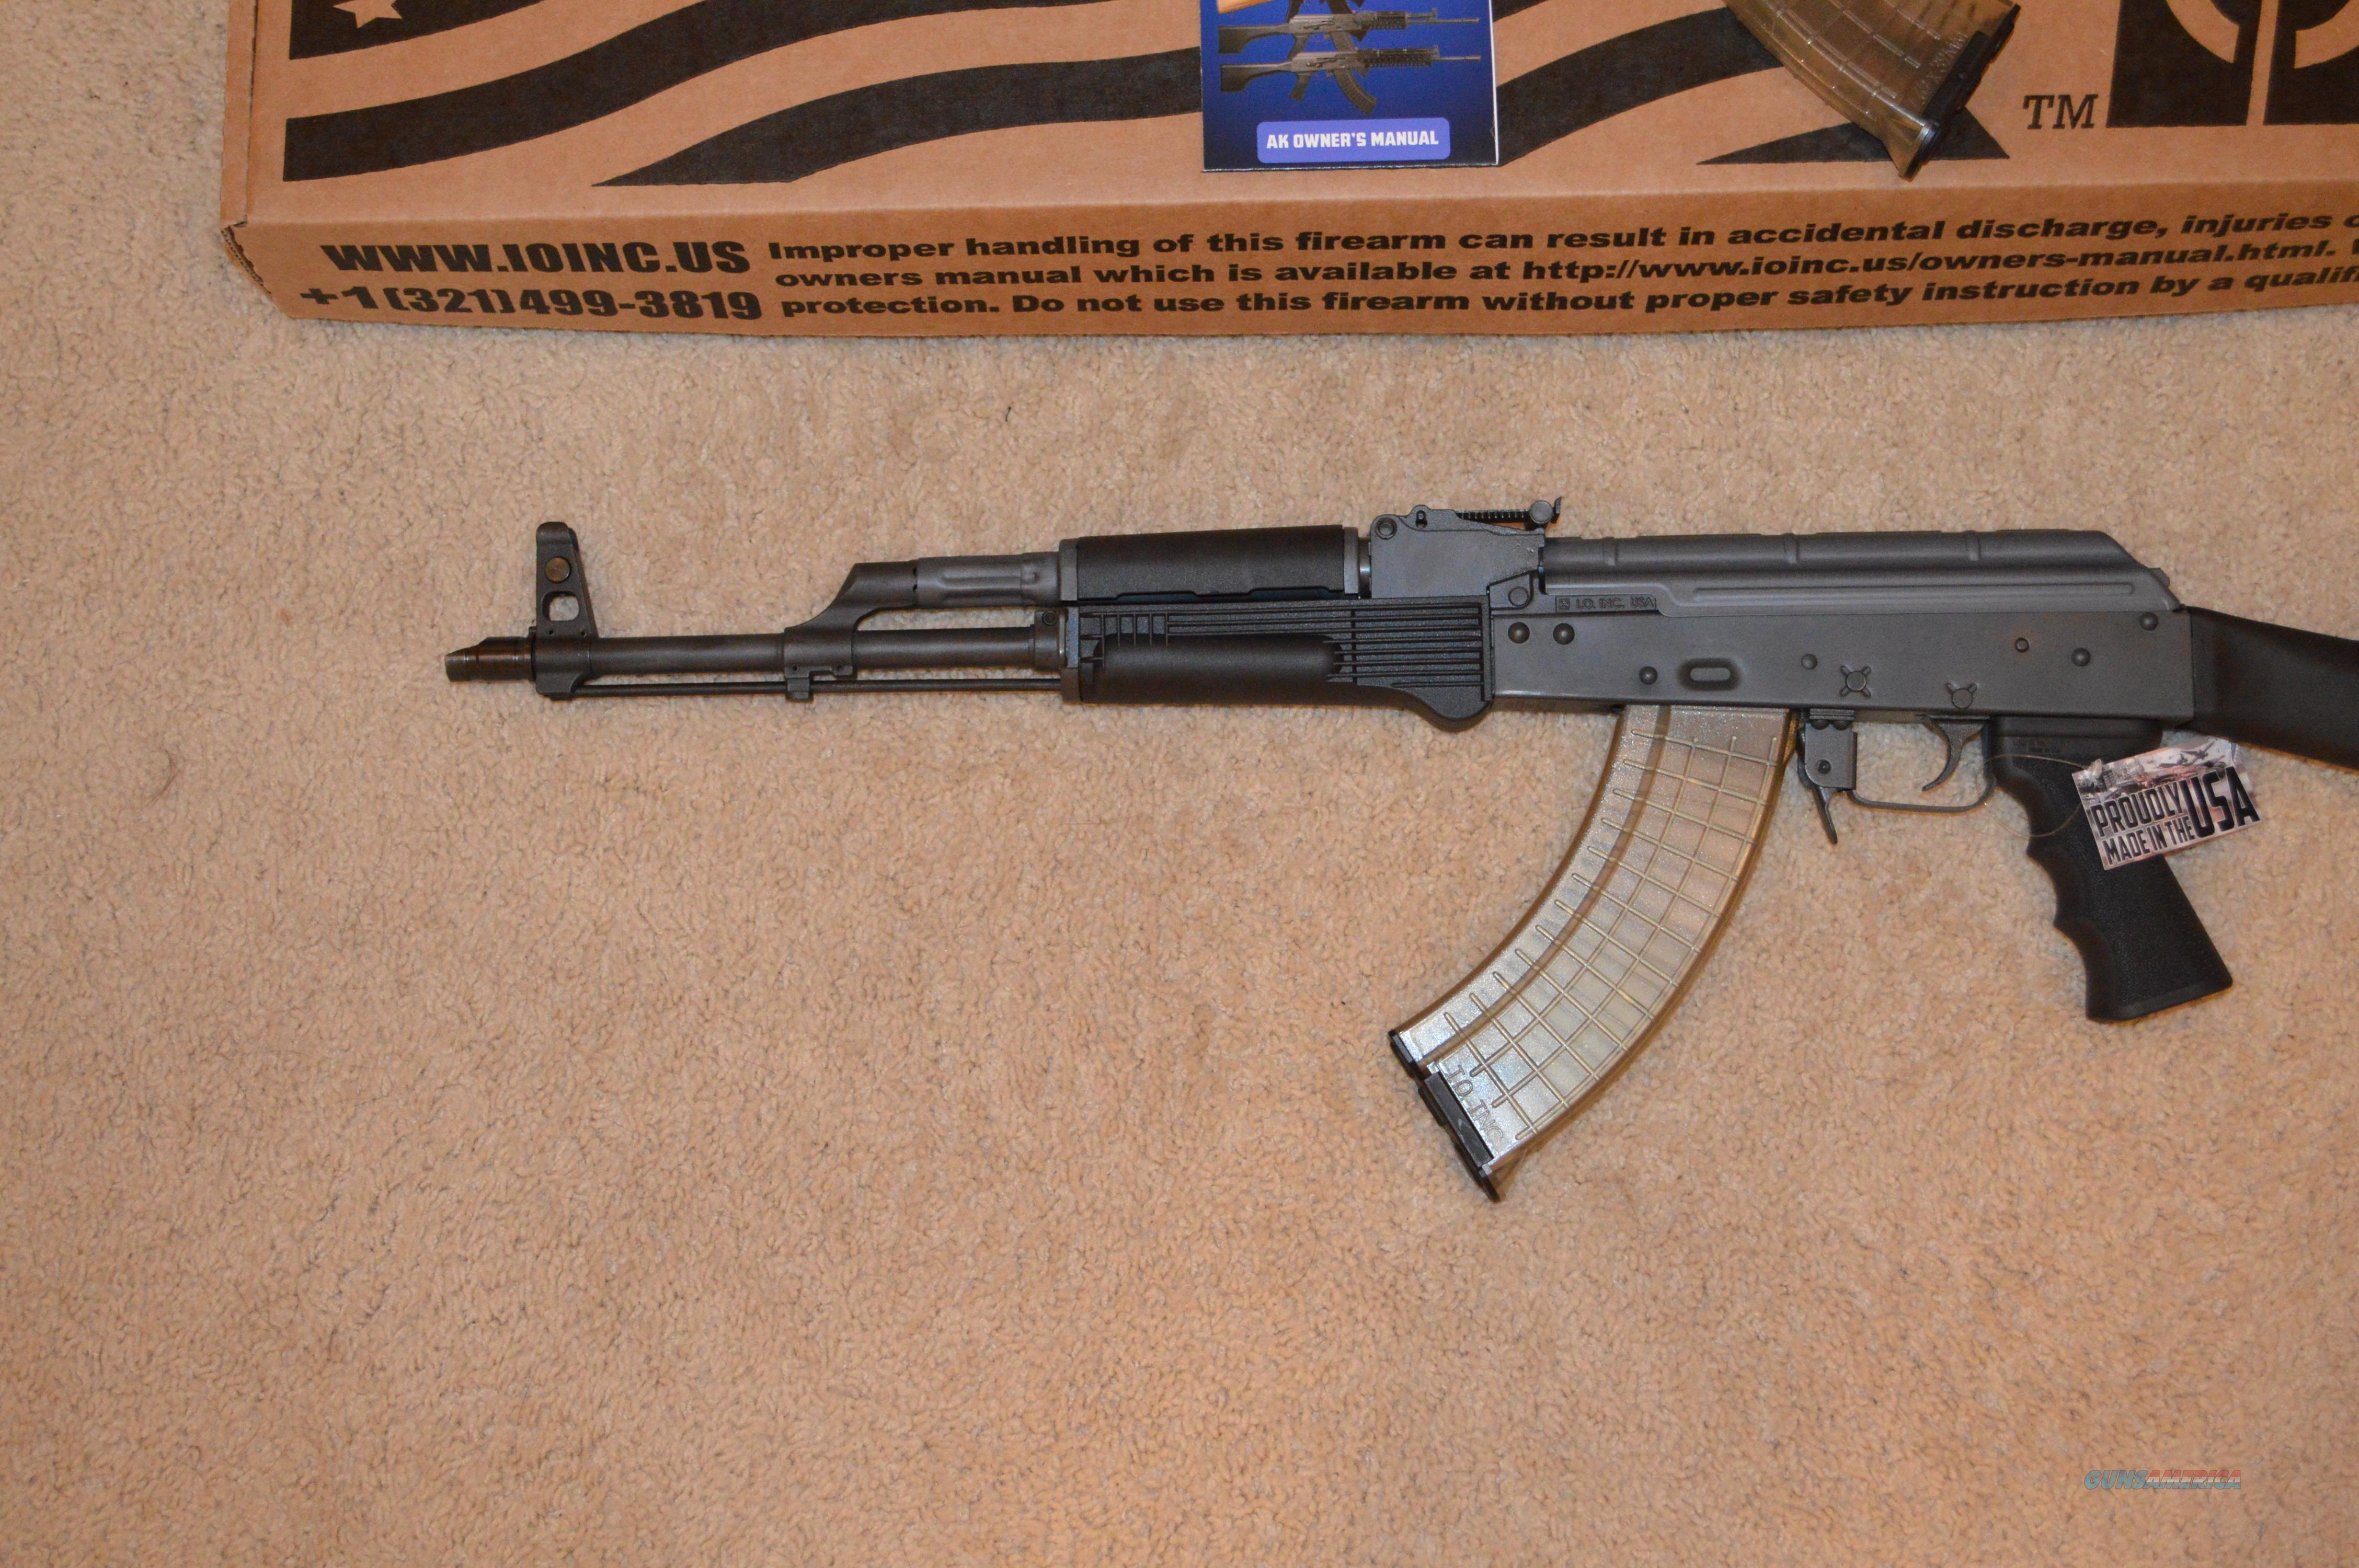 Ak ak 47 for sale by owner - 11611147 Jpg